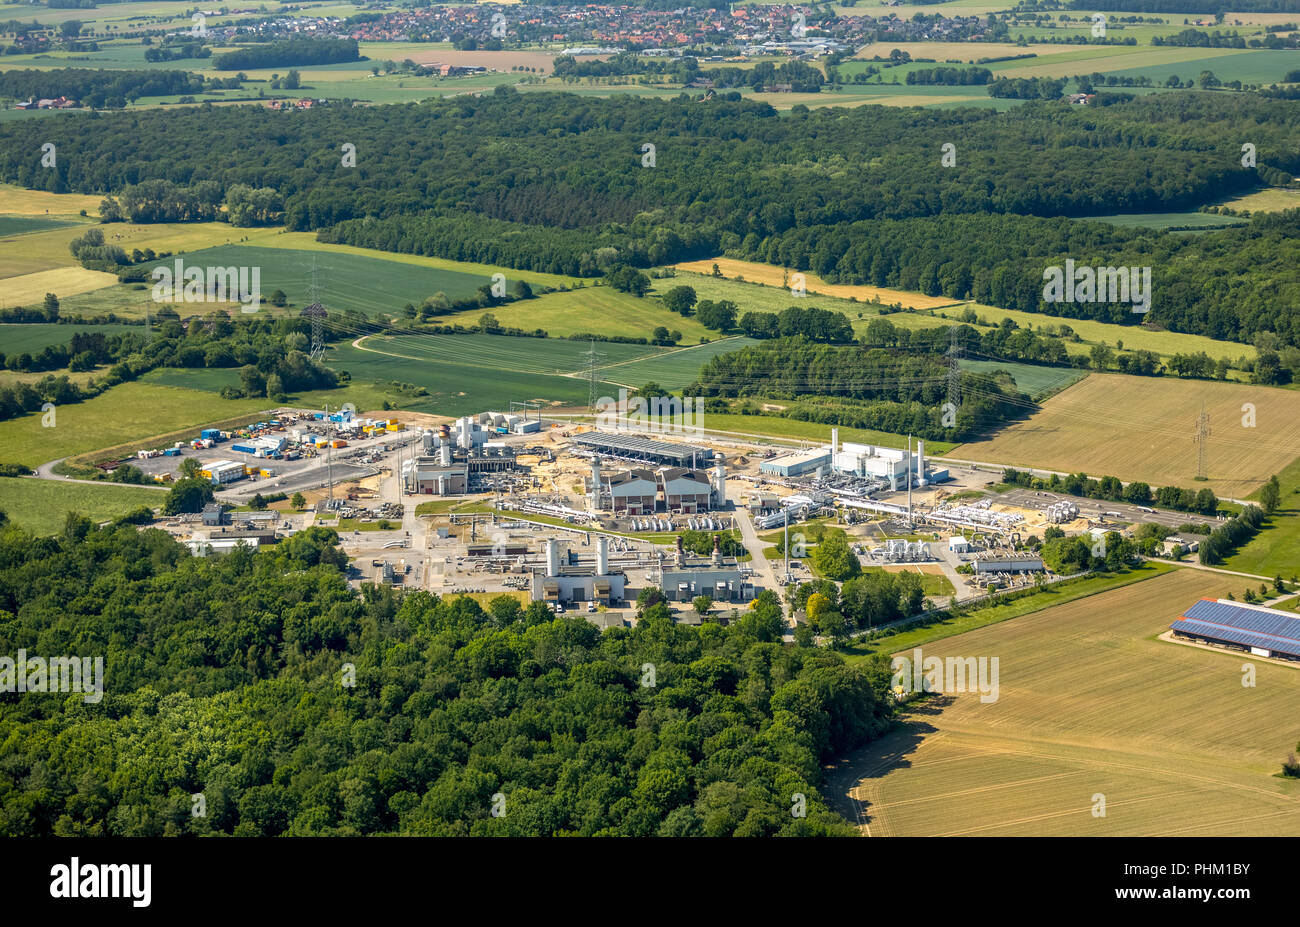 Aerial view, natural gas compressor station in Ehringhausen, Open Grid Europe, filters, cooler and systems for internal gas distribution, gas supply c - Stock Image